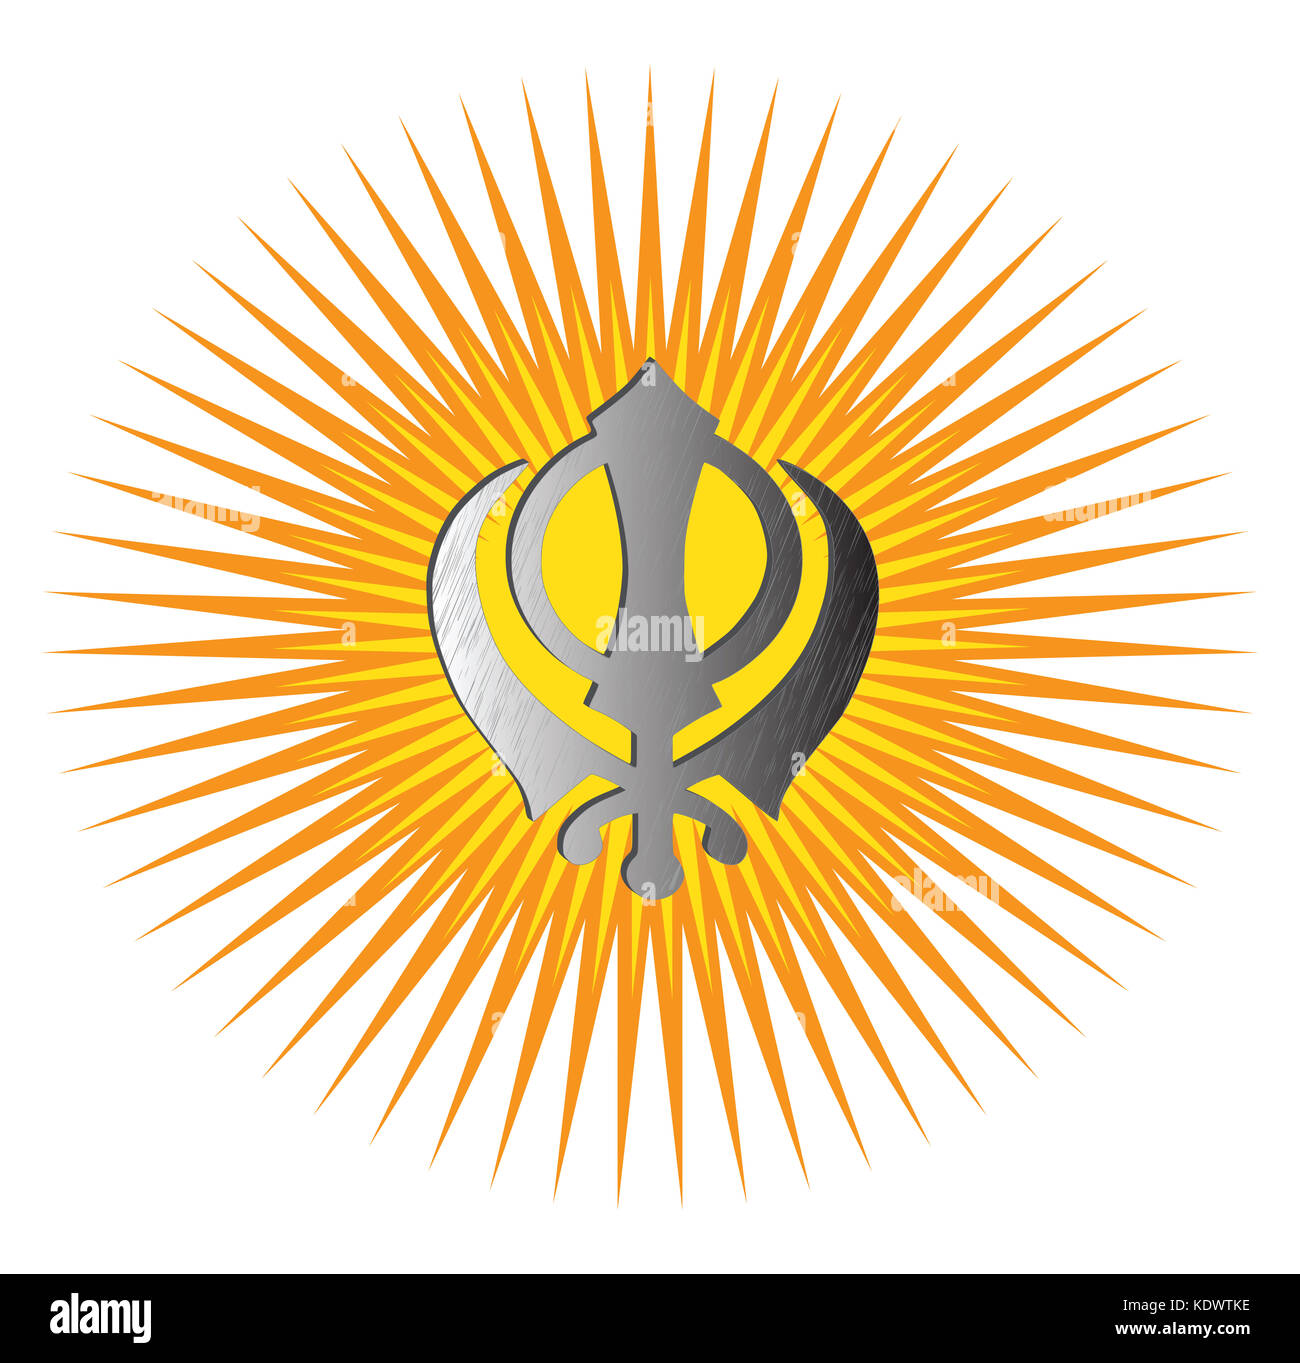 The main symbol of Sikhism – sign Khanda made of white metal. Red and gold gradient rays, isolated, illustration - Stock Image